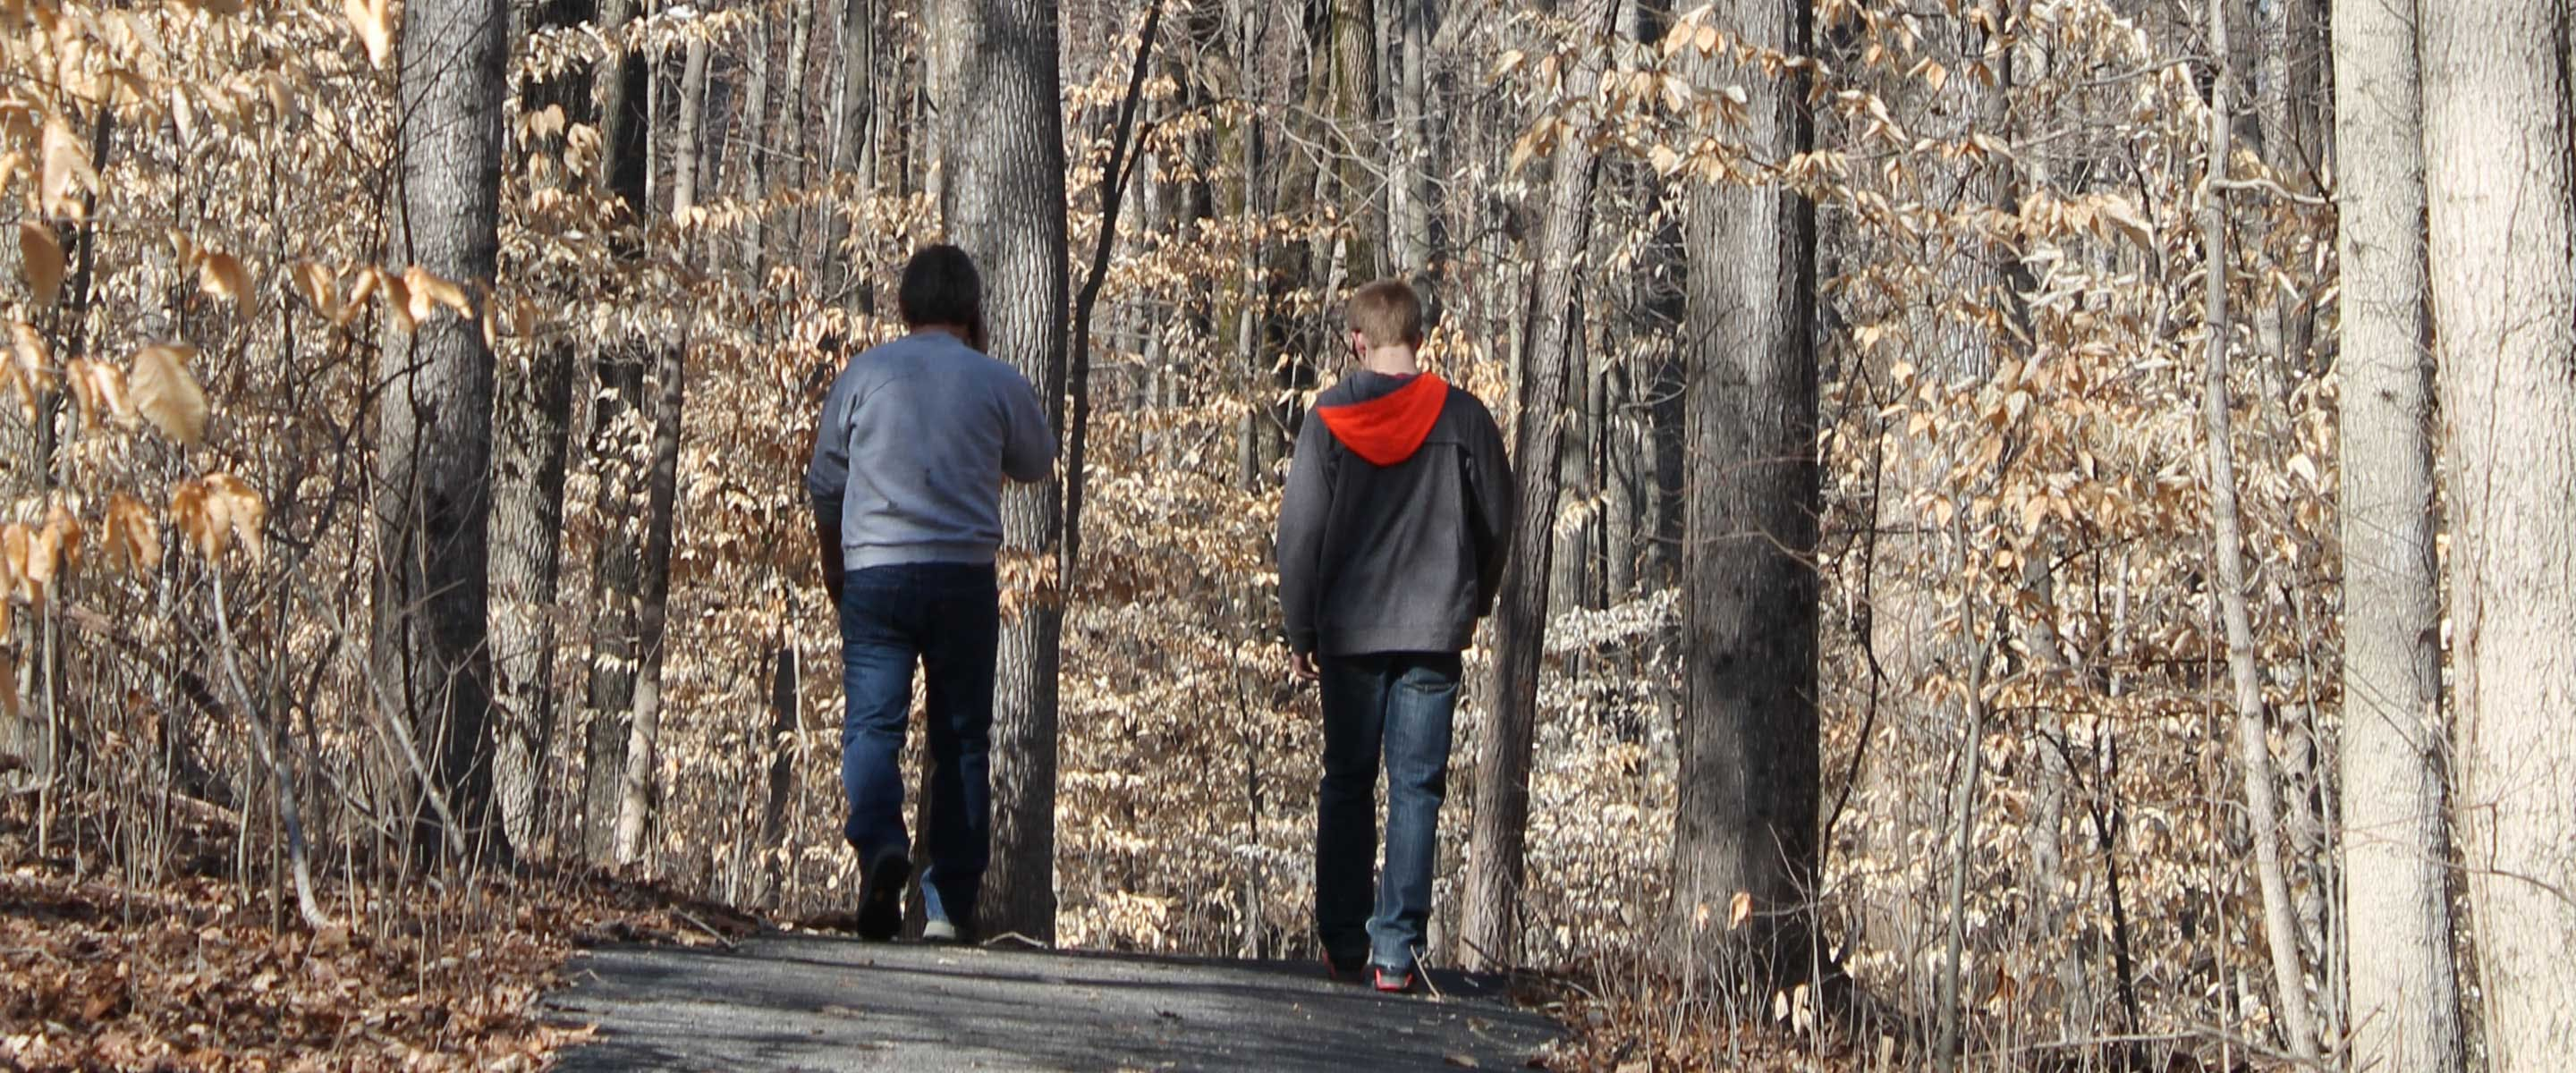 two men walking trail in the fall with leaves falling